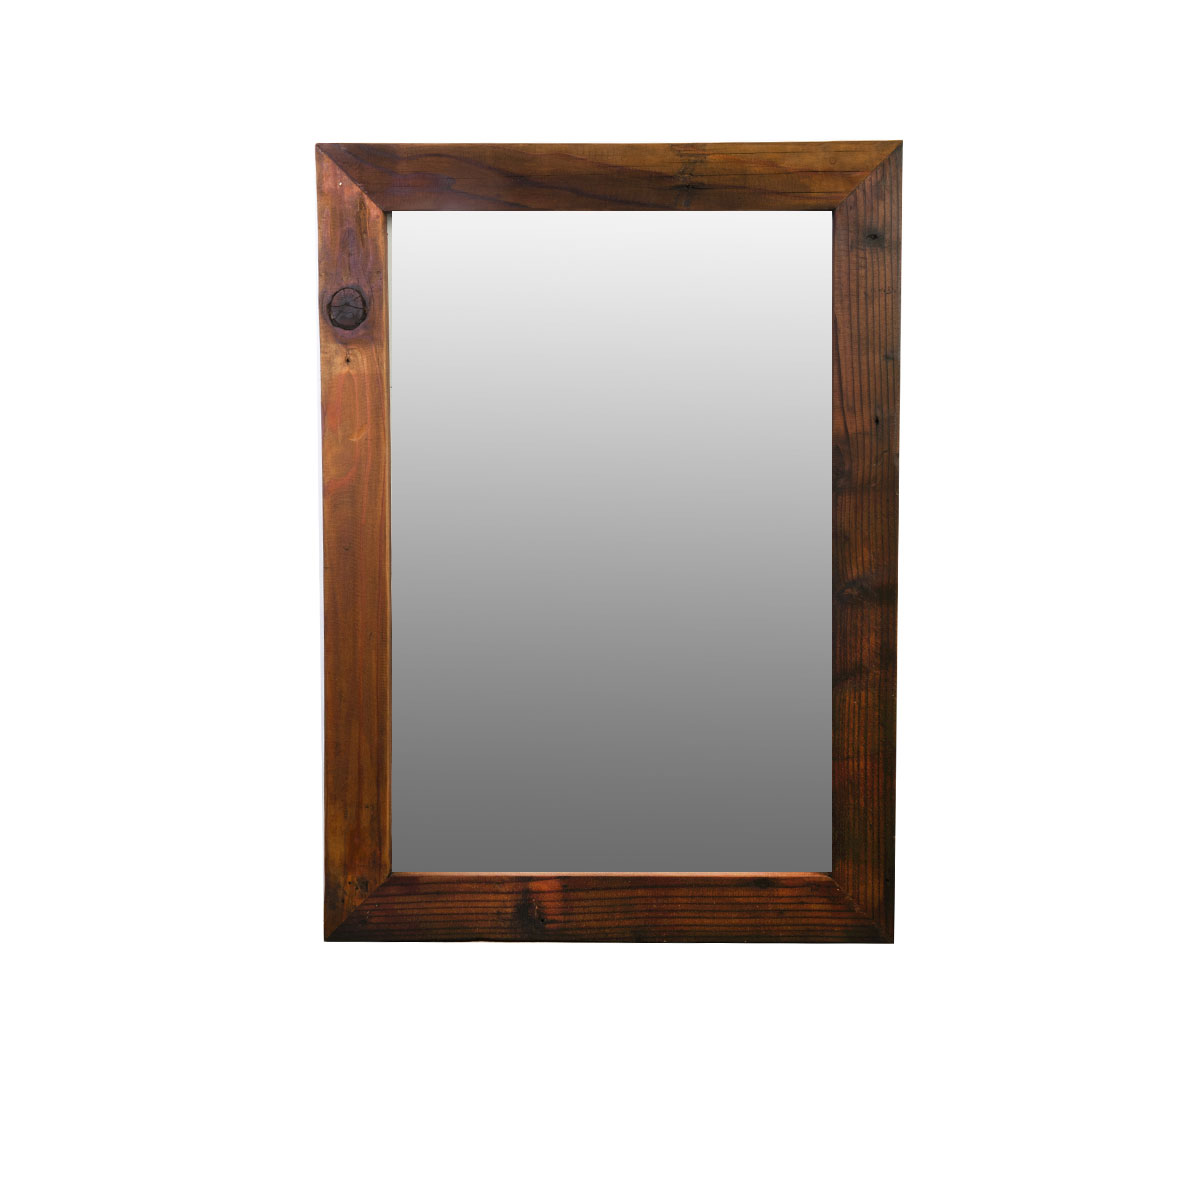 Purchase Reclaimed Rustic Mirror With Lightly Distressed Edges